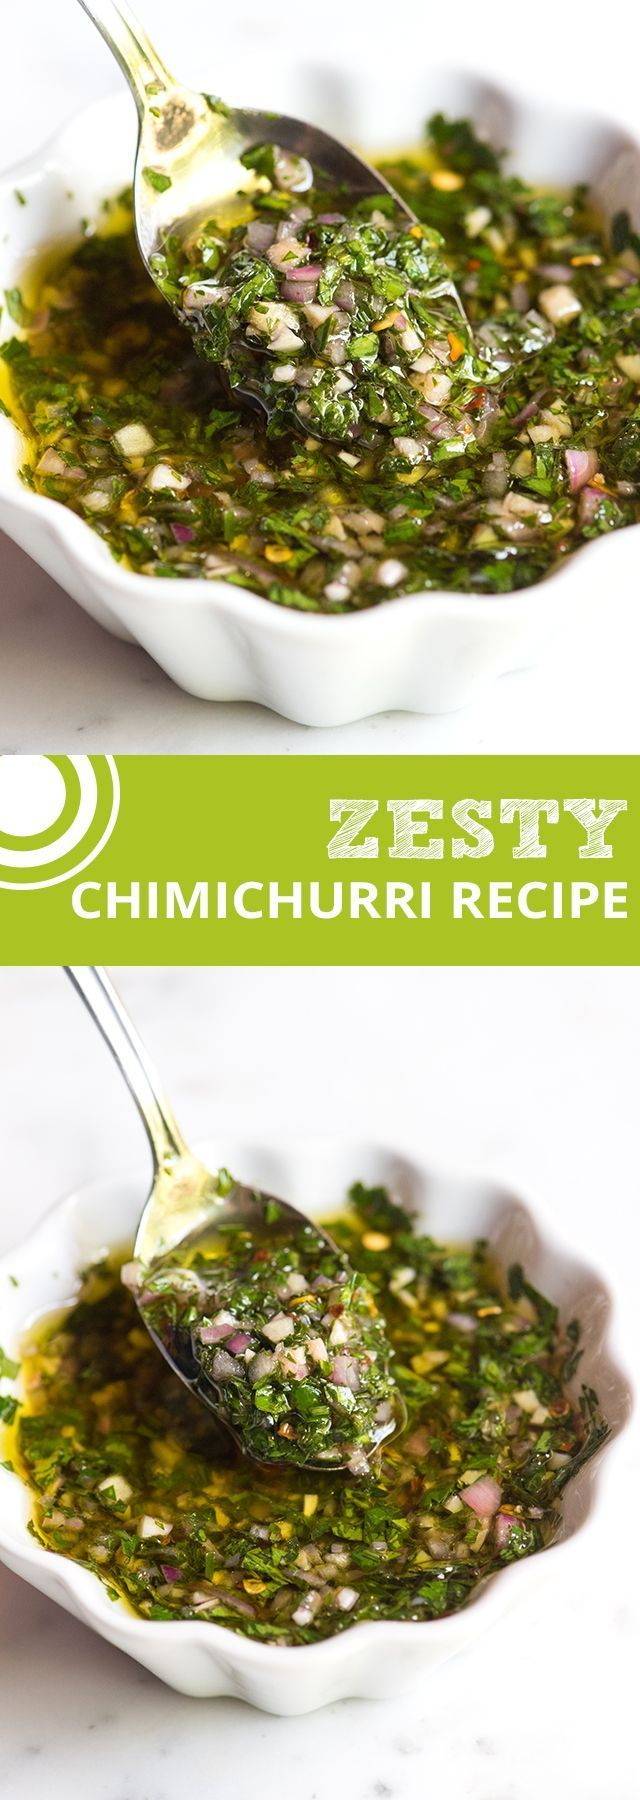 Zesty, Green Chimichurri Sauce -- made with fresh herbs, garlic, vinegar and olive oil that livens pretty much anything you throw at it | @inspiredtaste inspiredtaste.net